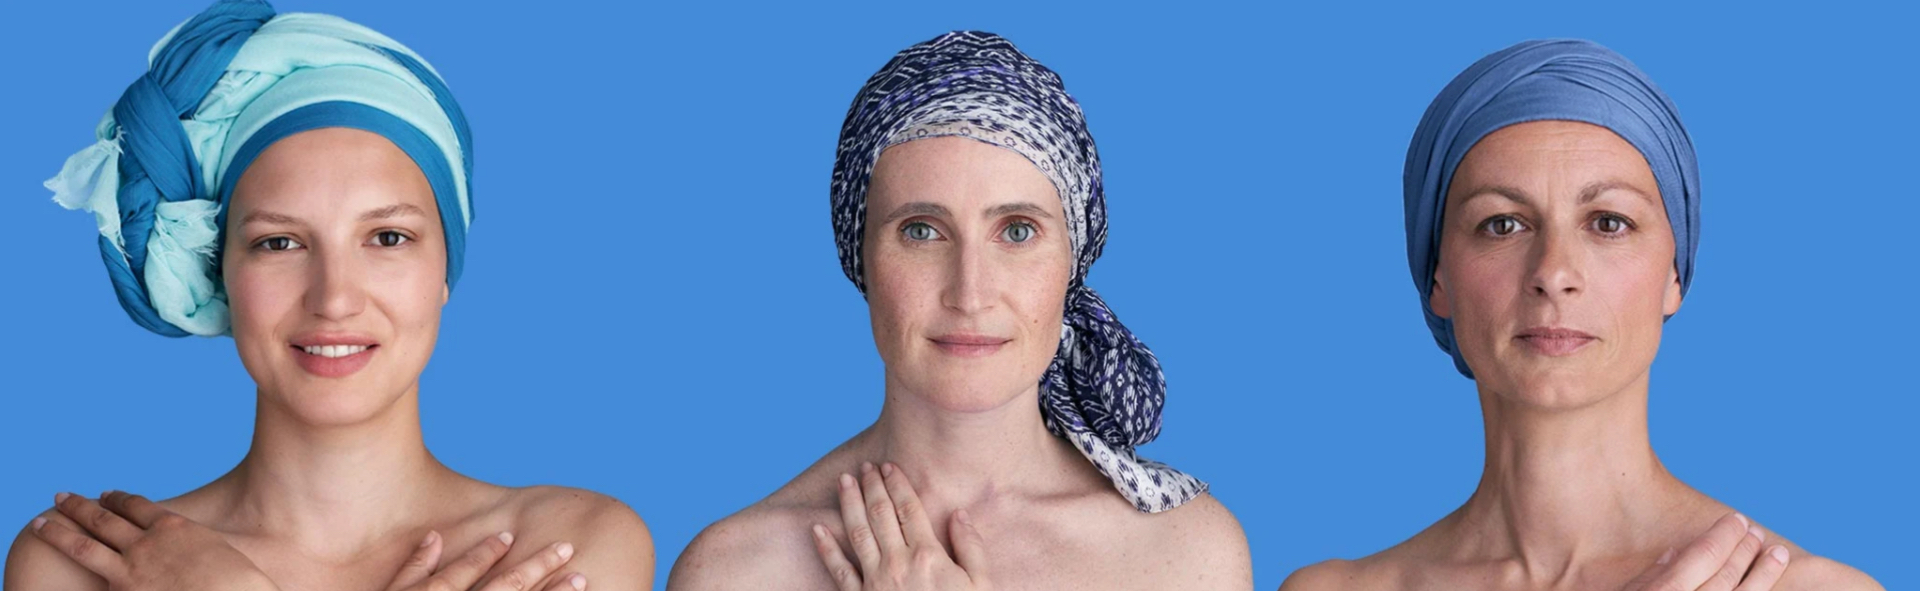 TAKING CARE OF MY SKIN WHEN FACING CANCER